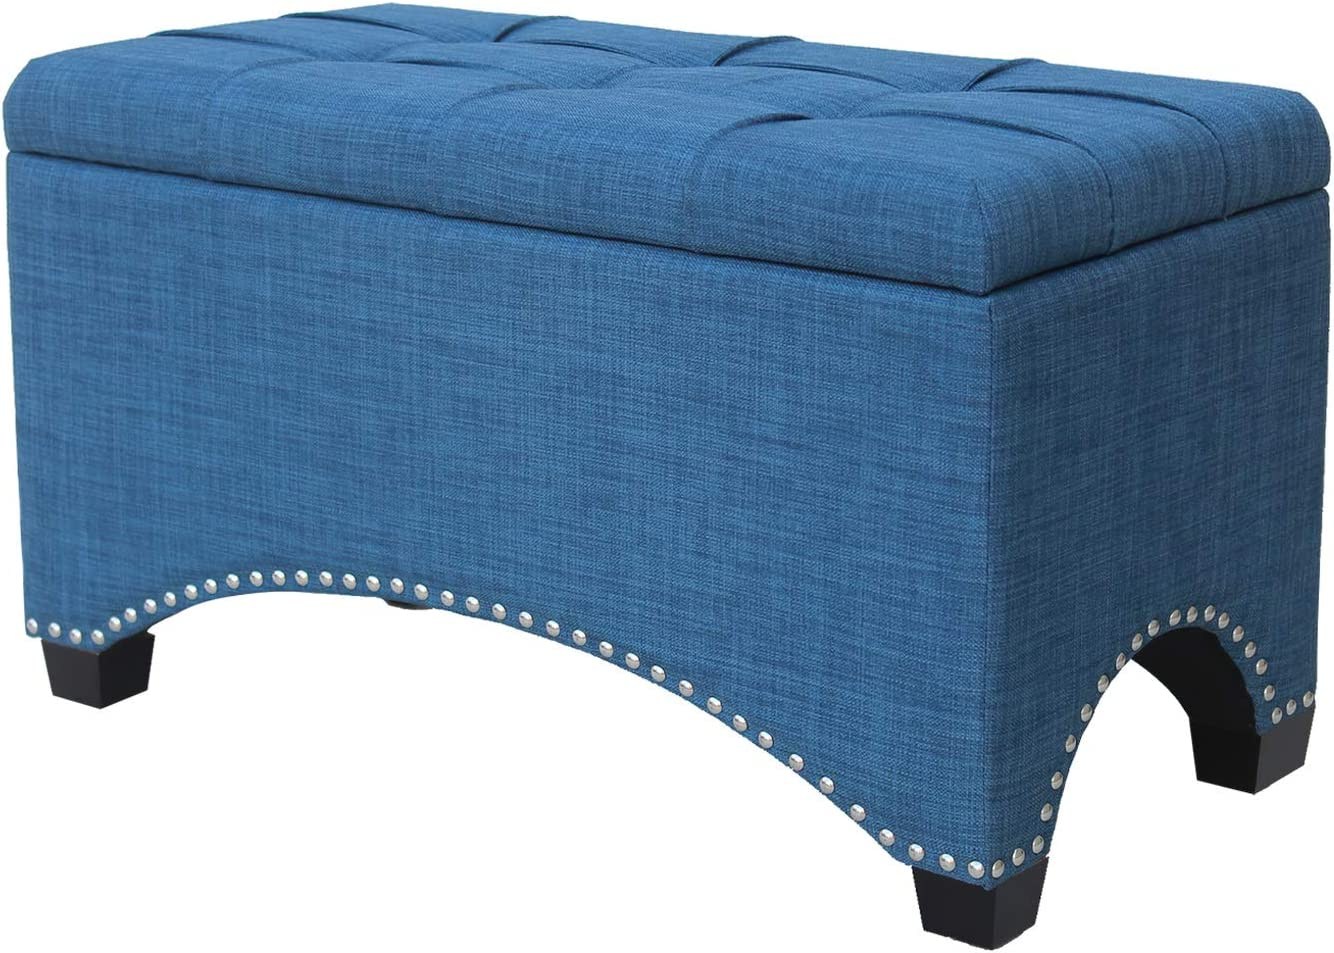 Nost & Host Ottoman Bench with Storage 30 Inches, Denim Blue Fabric Rectangular Ottoman with Hinged Lid, Indoor Cocktail Ottoman Rectangle Bench with Button Tufted Top Foot Rest Stool